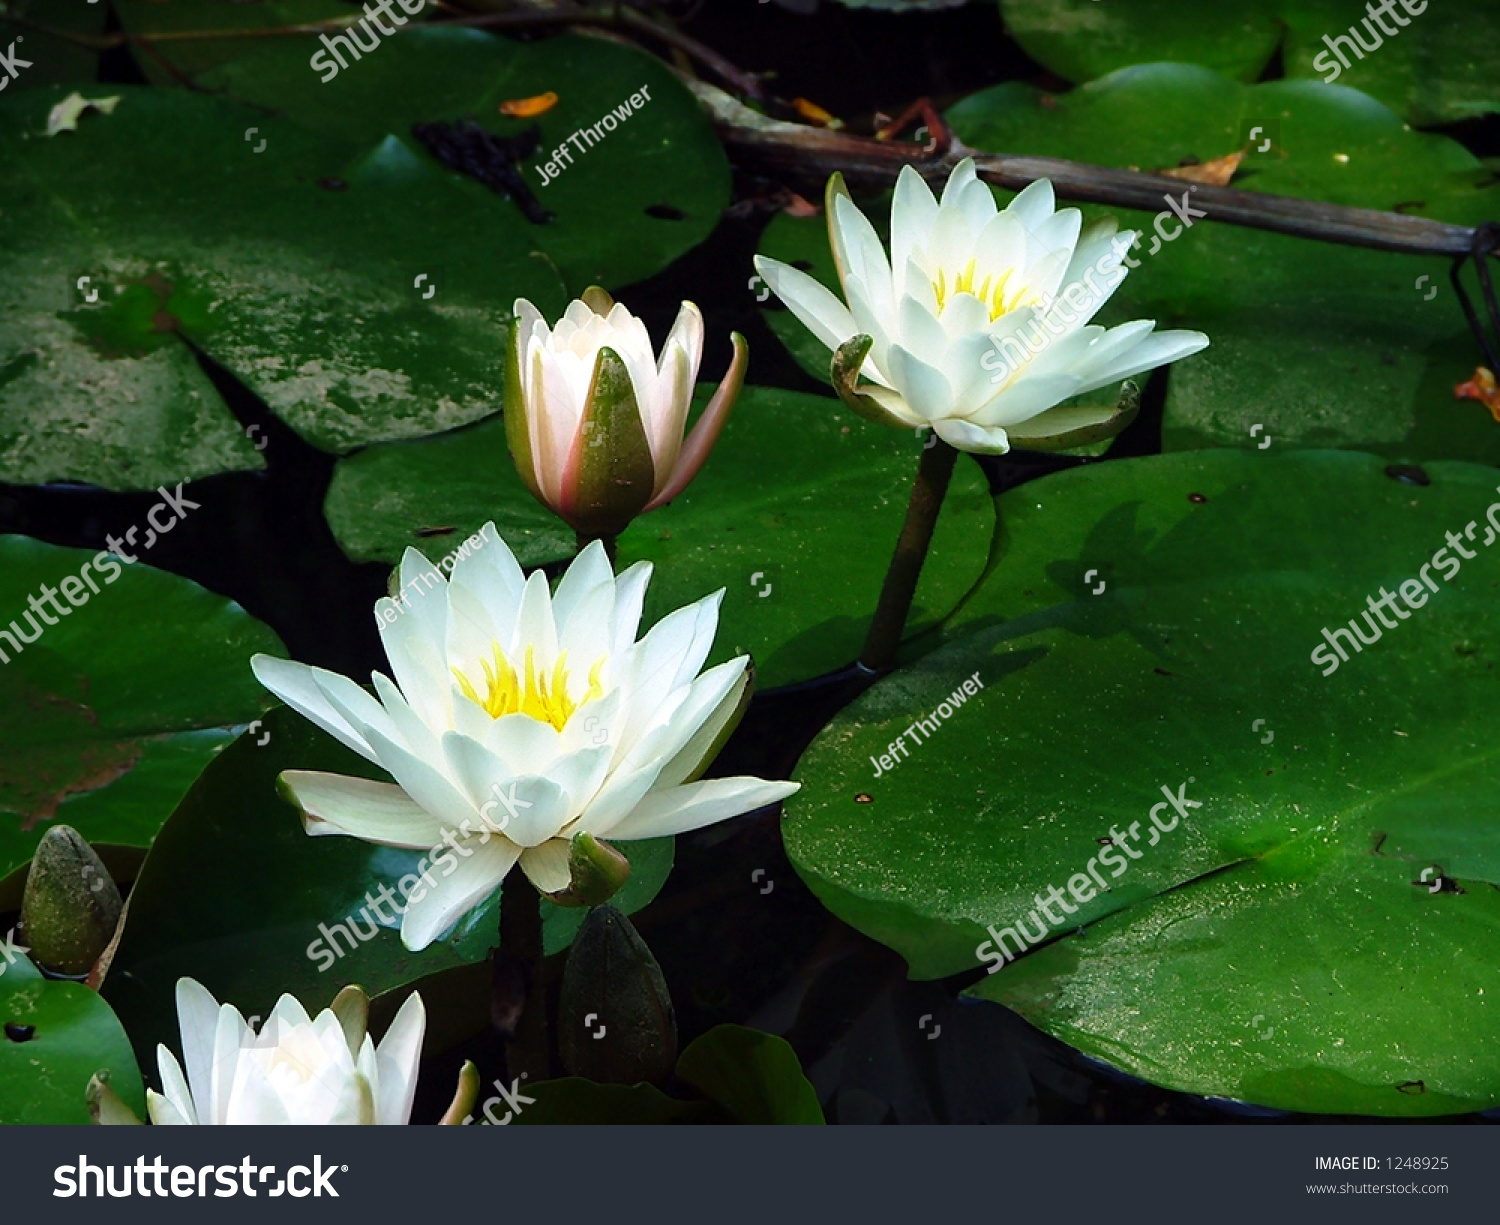 Lily pad flowers stock photo edit now 1248925 shutterstock lily pad flowers izmirmasajfo